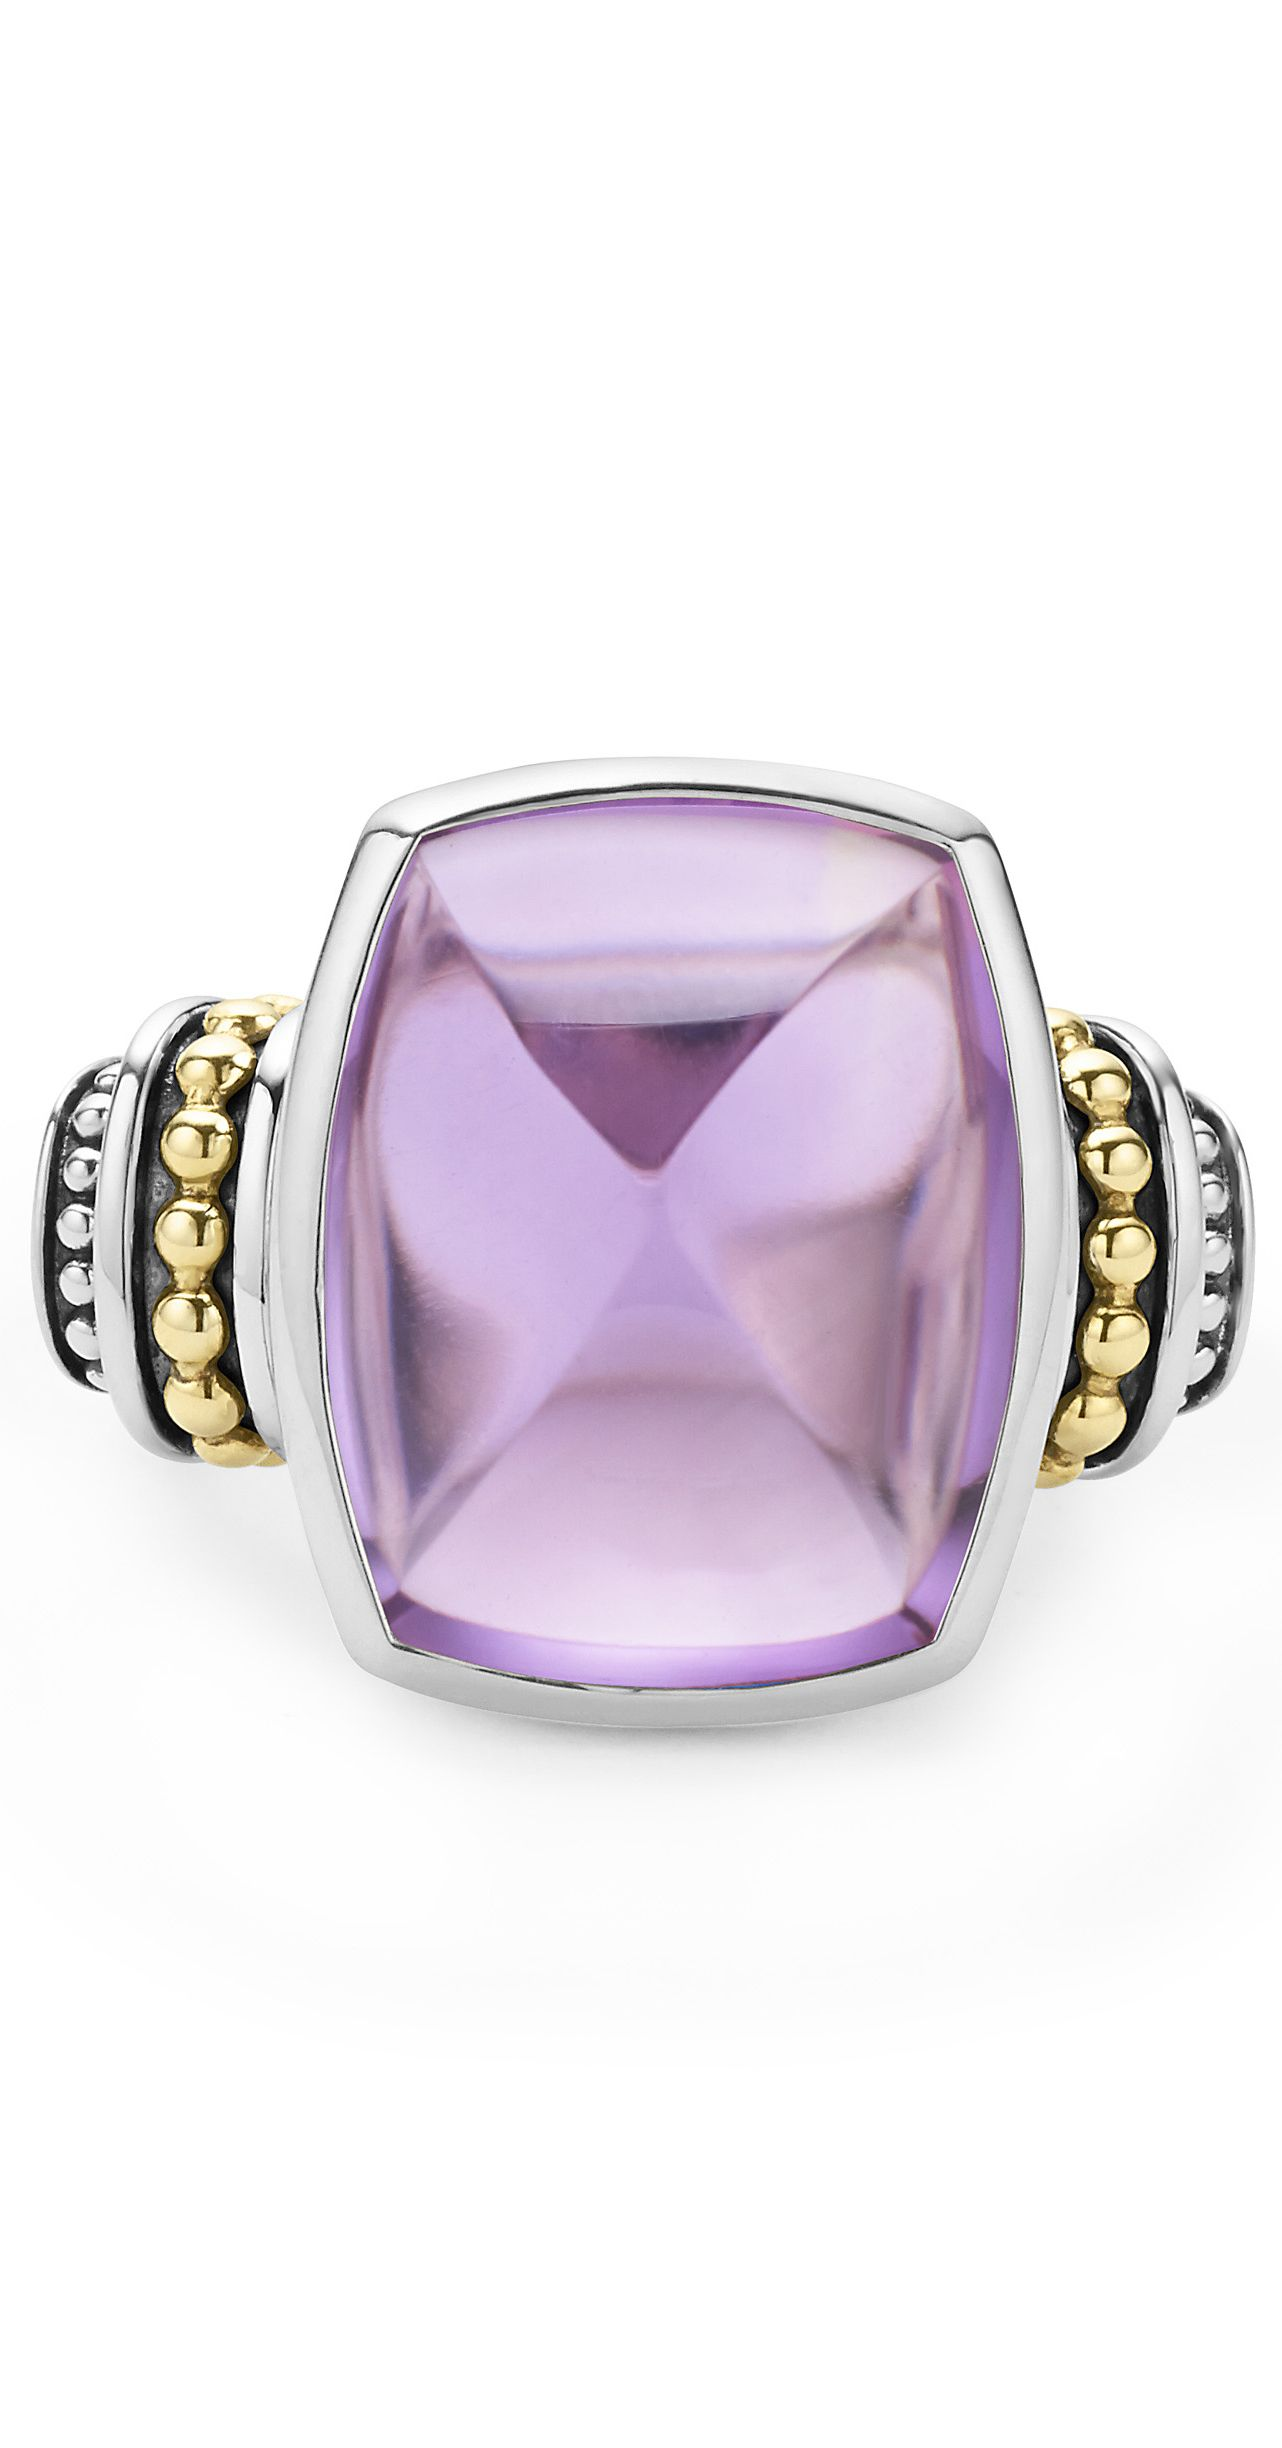 framed more colors with this gemstone complimentary extra pin cute cut gemstones rings make adorable cushion checkerboard ring your purple color